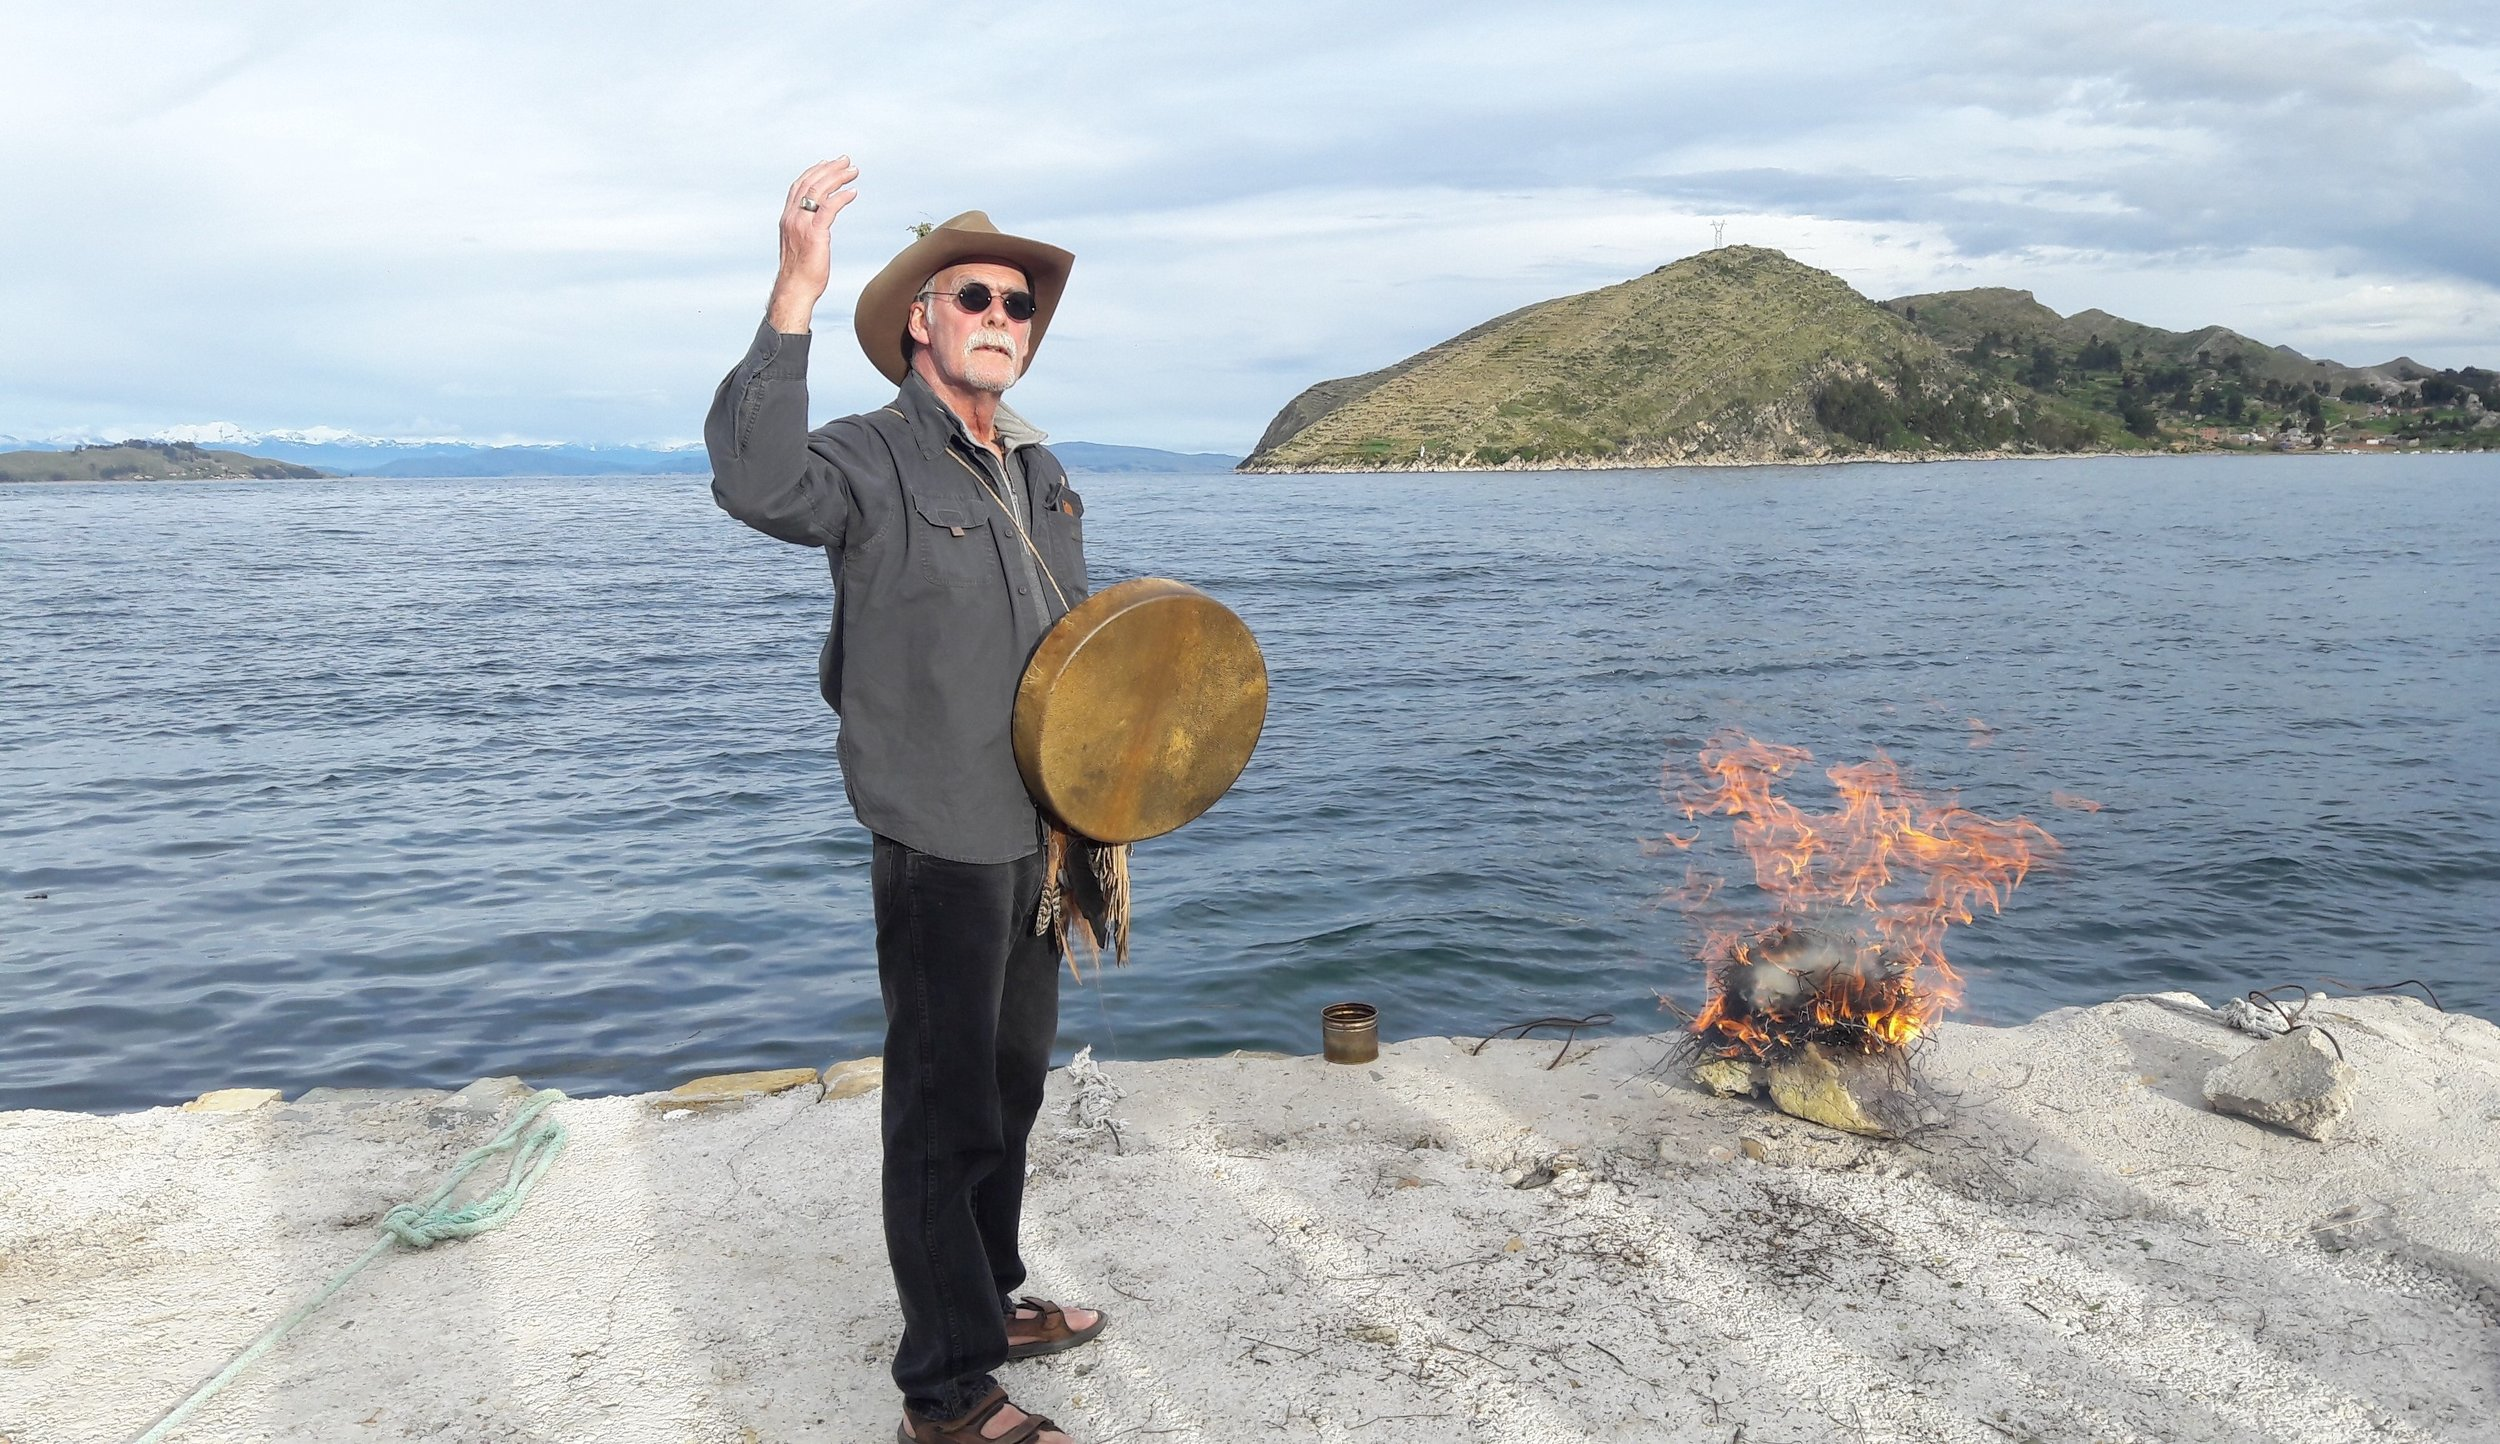 Fire Ceremony at the shore of the Island of the Sun, Lake titicaca, bolivia